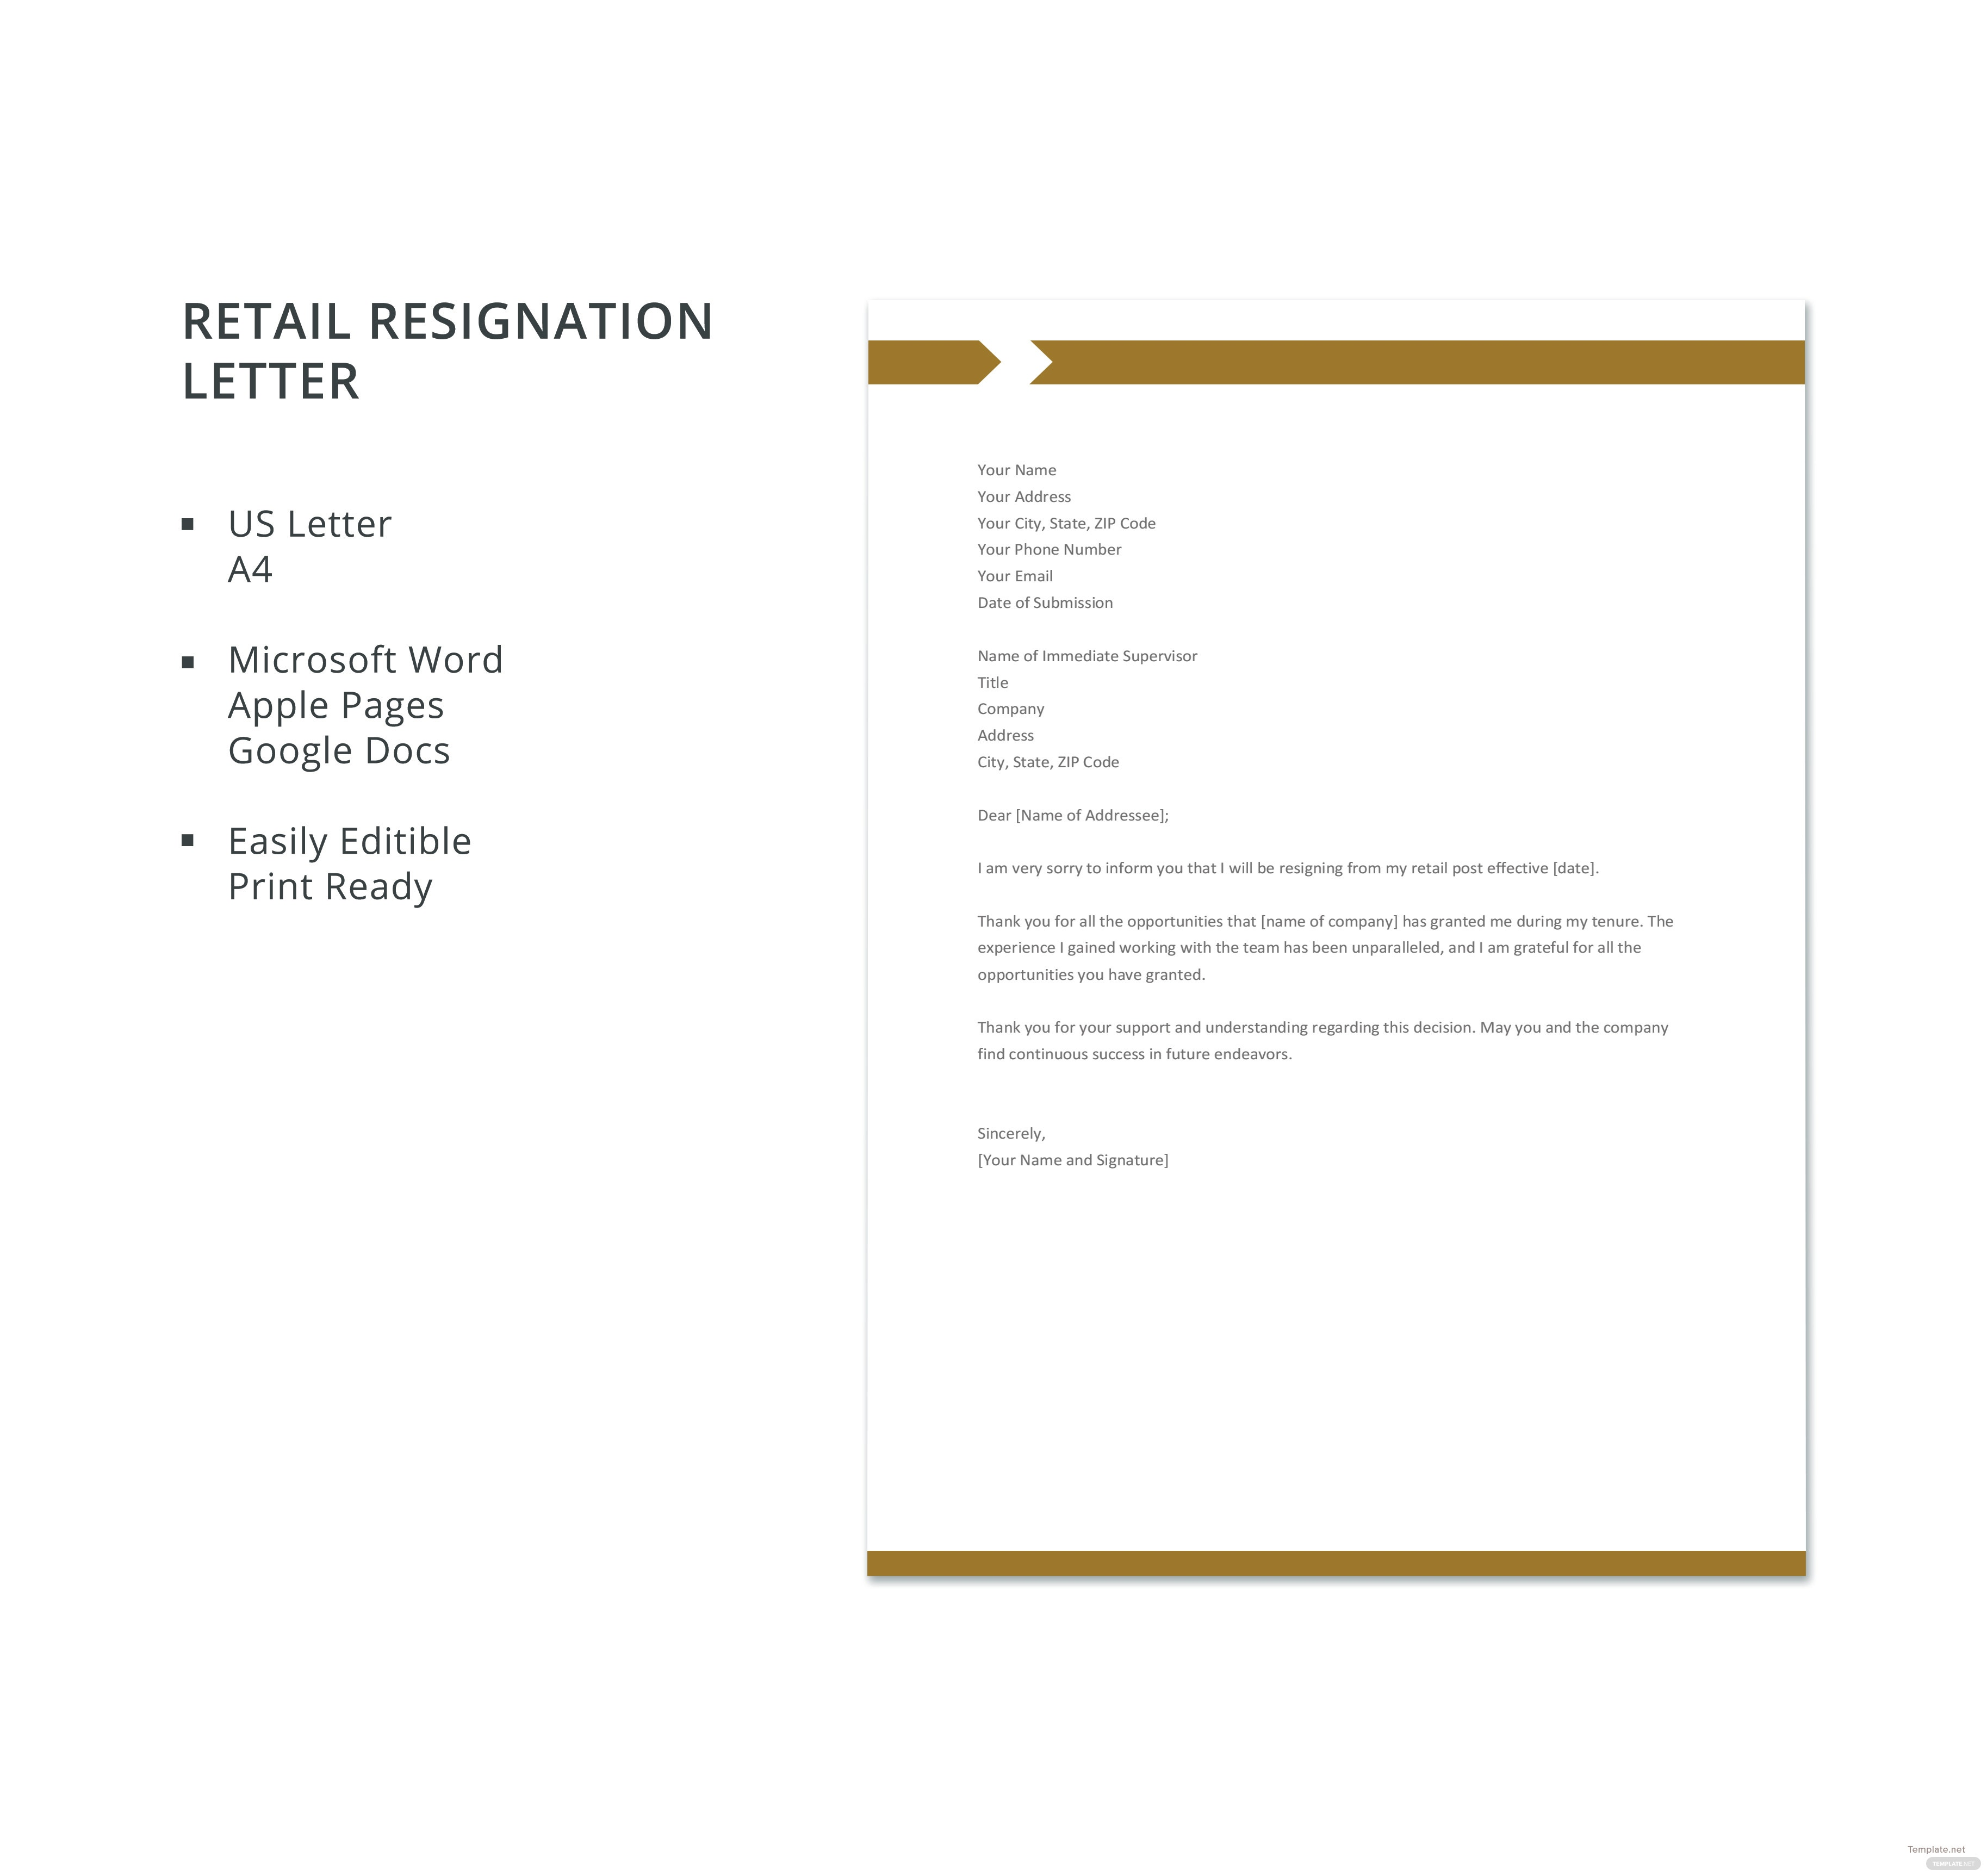 Free retail resignation letter template in microsoft word apple retail resignation letter template spiritdancerdesigns Gallery